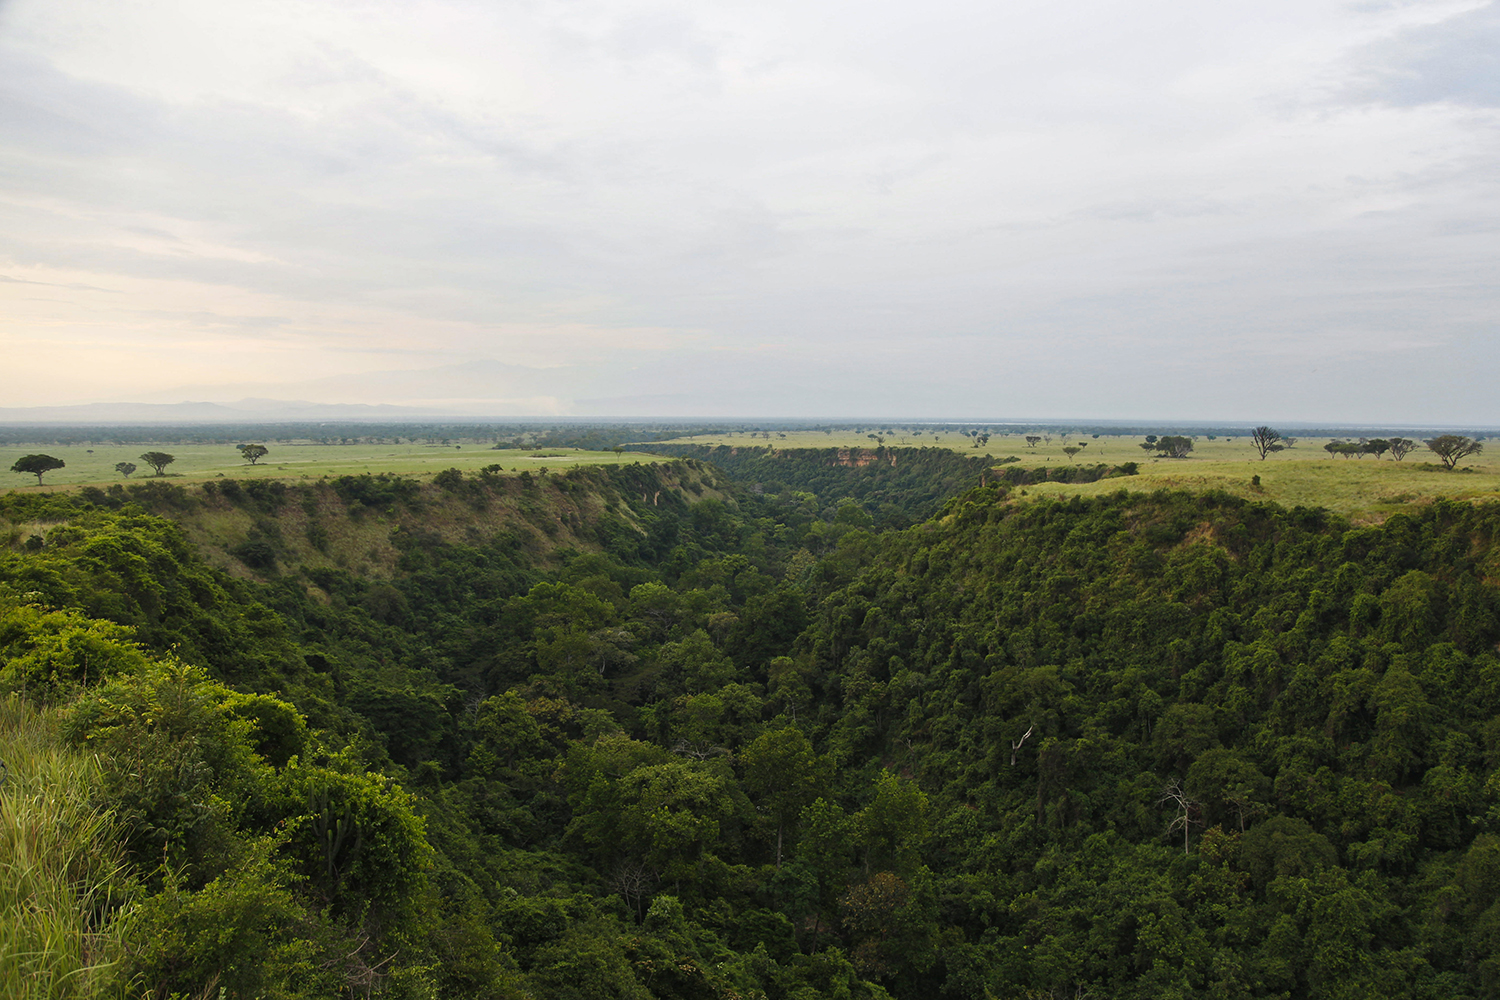 Kyambura Gorge in Queen Elizabeth National Park, seen on Feb. 4, 2020, is home to an array of primate species, including chimpanzees, baboons, vervet monkeys, and the black-and-white colobus.